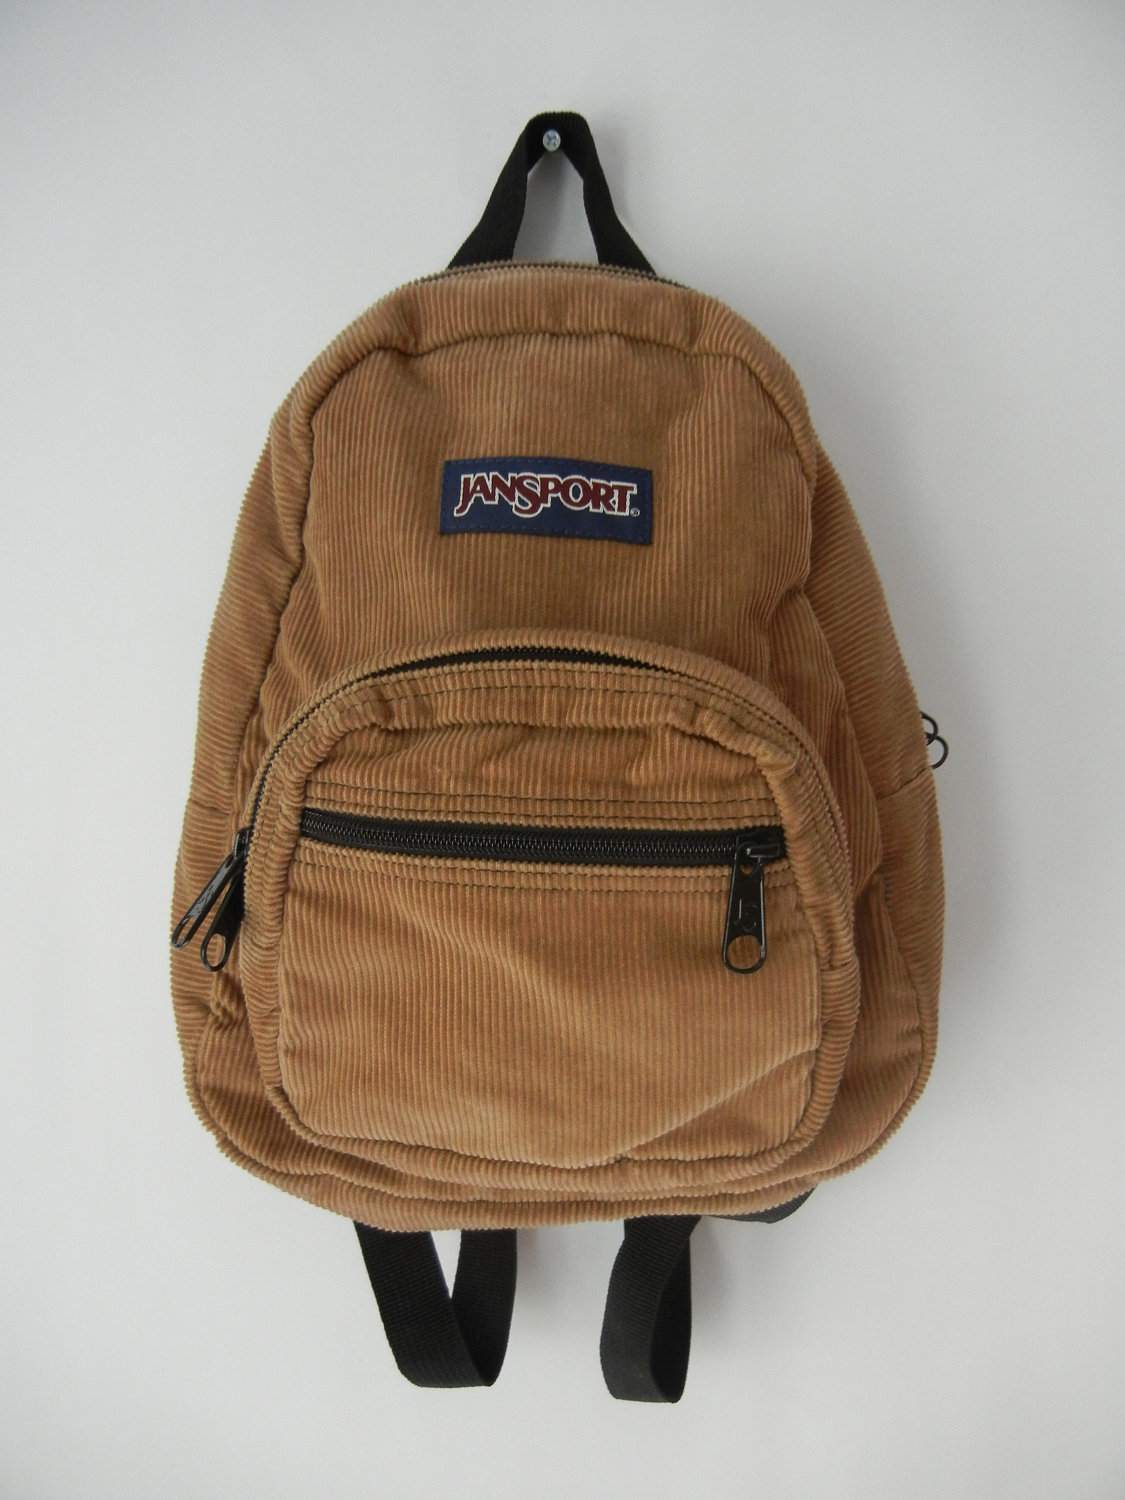 Jansport Corduroy Backpack LK7ZaZ0O